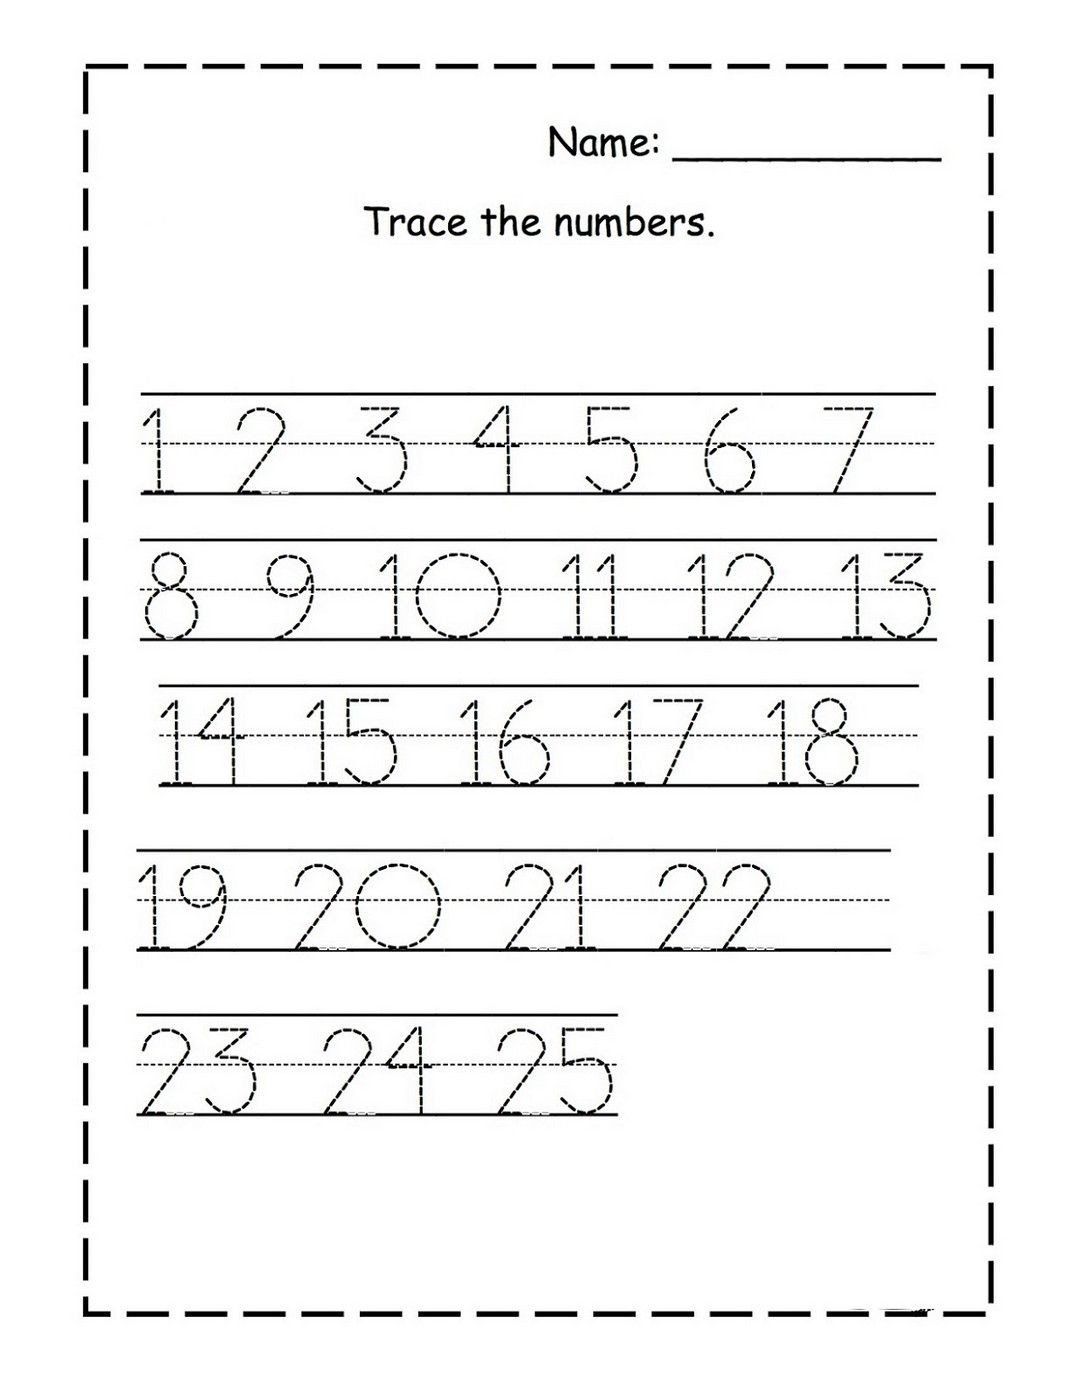 Free Printable Number Tracing Worksheets Tracing Numbers 1 25 for Kg Page